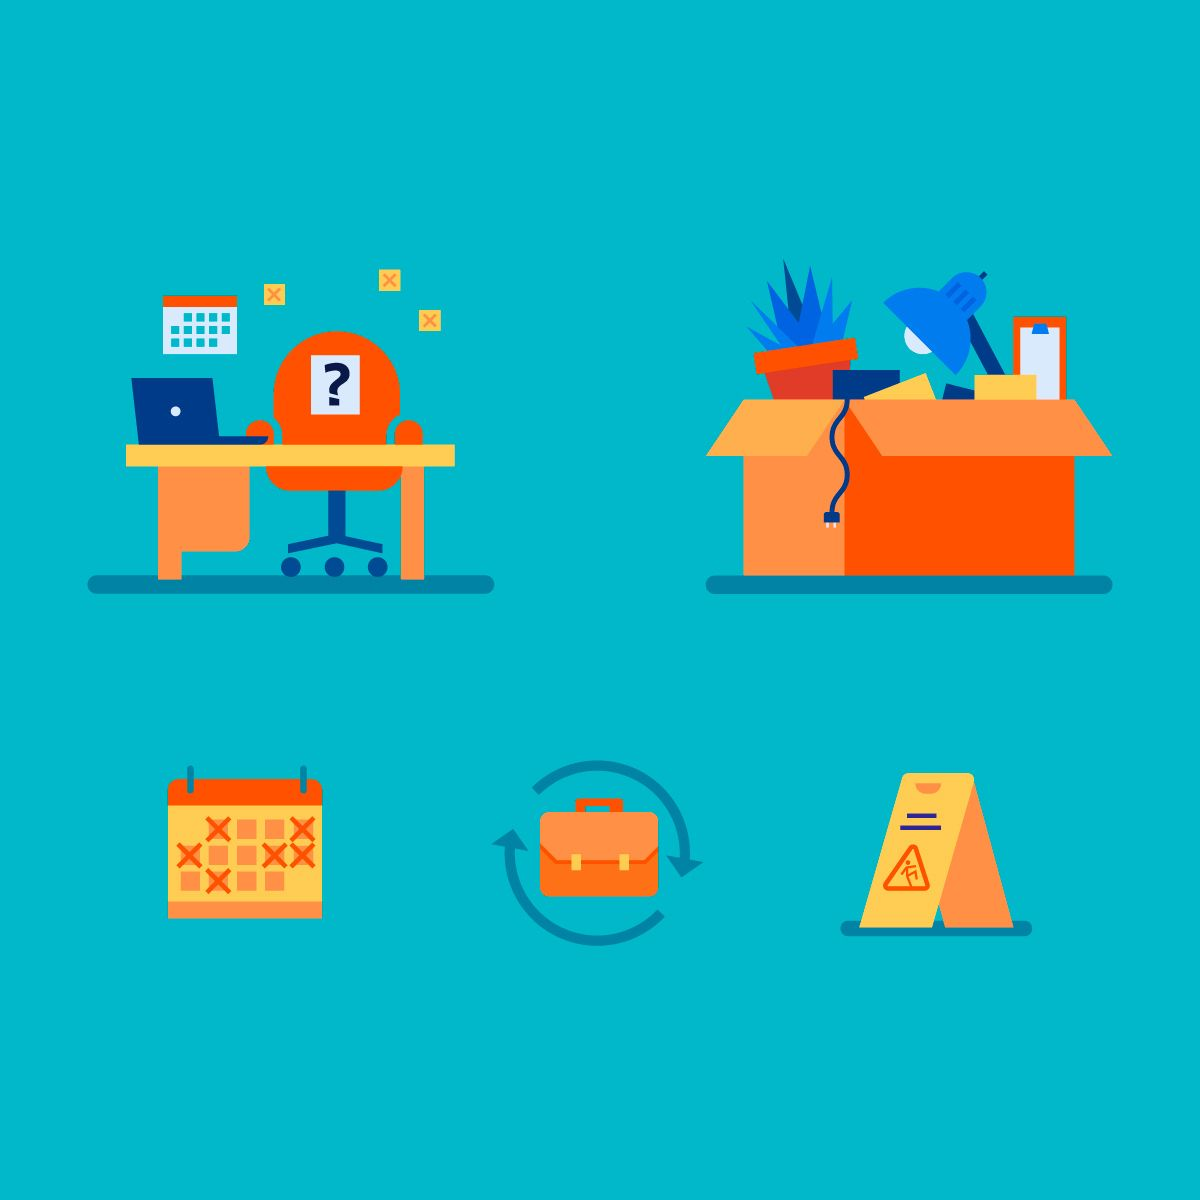 Some More Icons From A Recent Infographic Infographic Icon Test Occasion Random Problemsolving Concept I Creative Studio Illustration Problem Solving